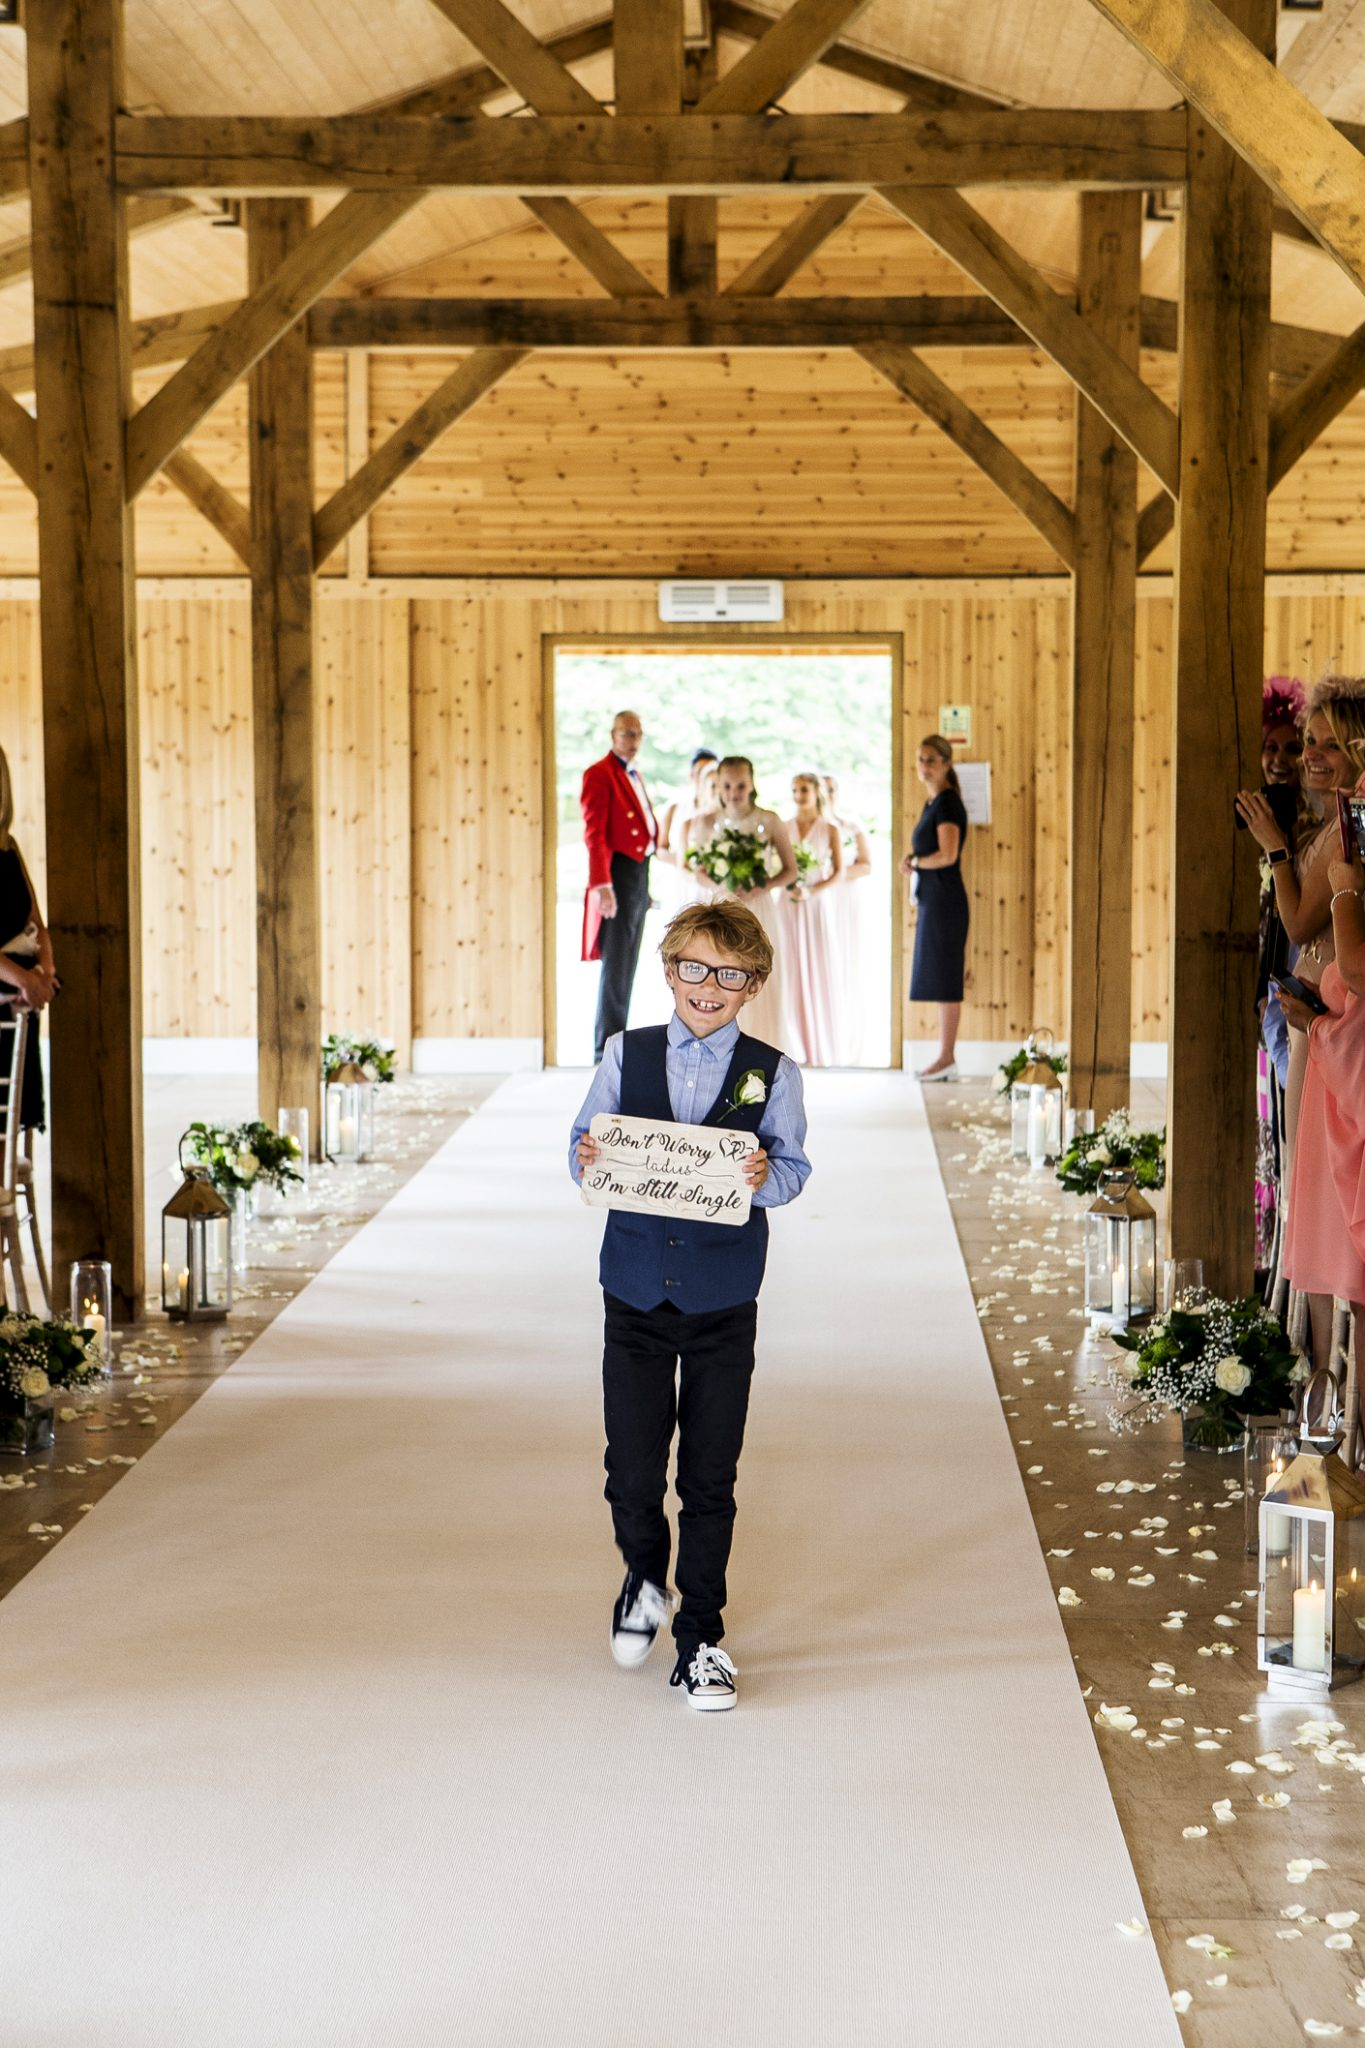 photography-of-the-page-boy-at-the-wedding-ceremony-at-merrydale-manor-cheshire